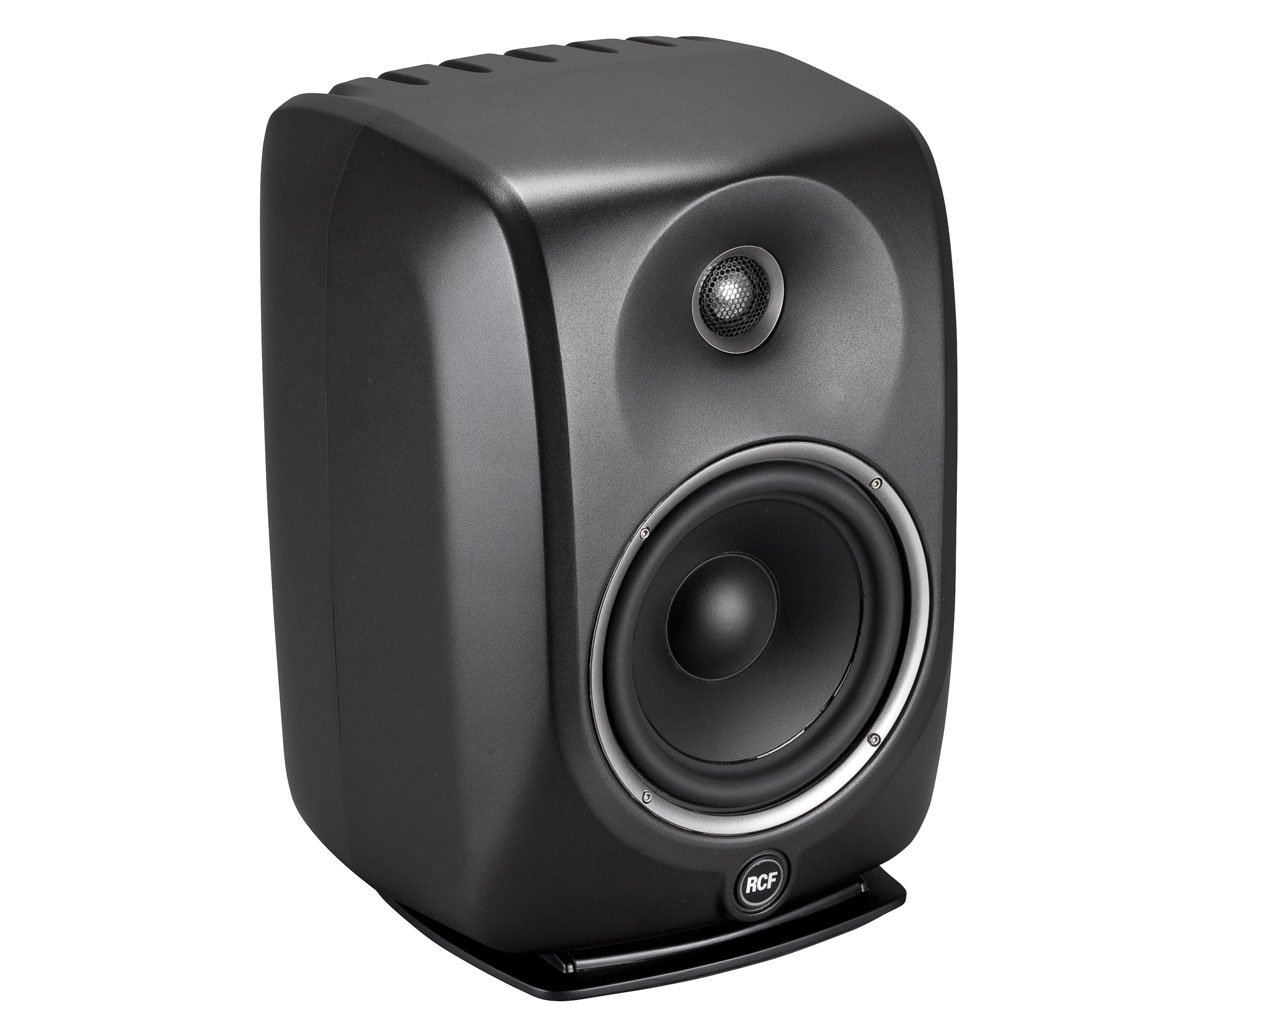 rcf mytho 8 active two way 8 inch studio monitor with dedicated dsp processing rcf13 mytho 8. Black Bedroom Furniture Sets. Home Design Ideas